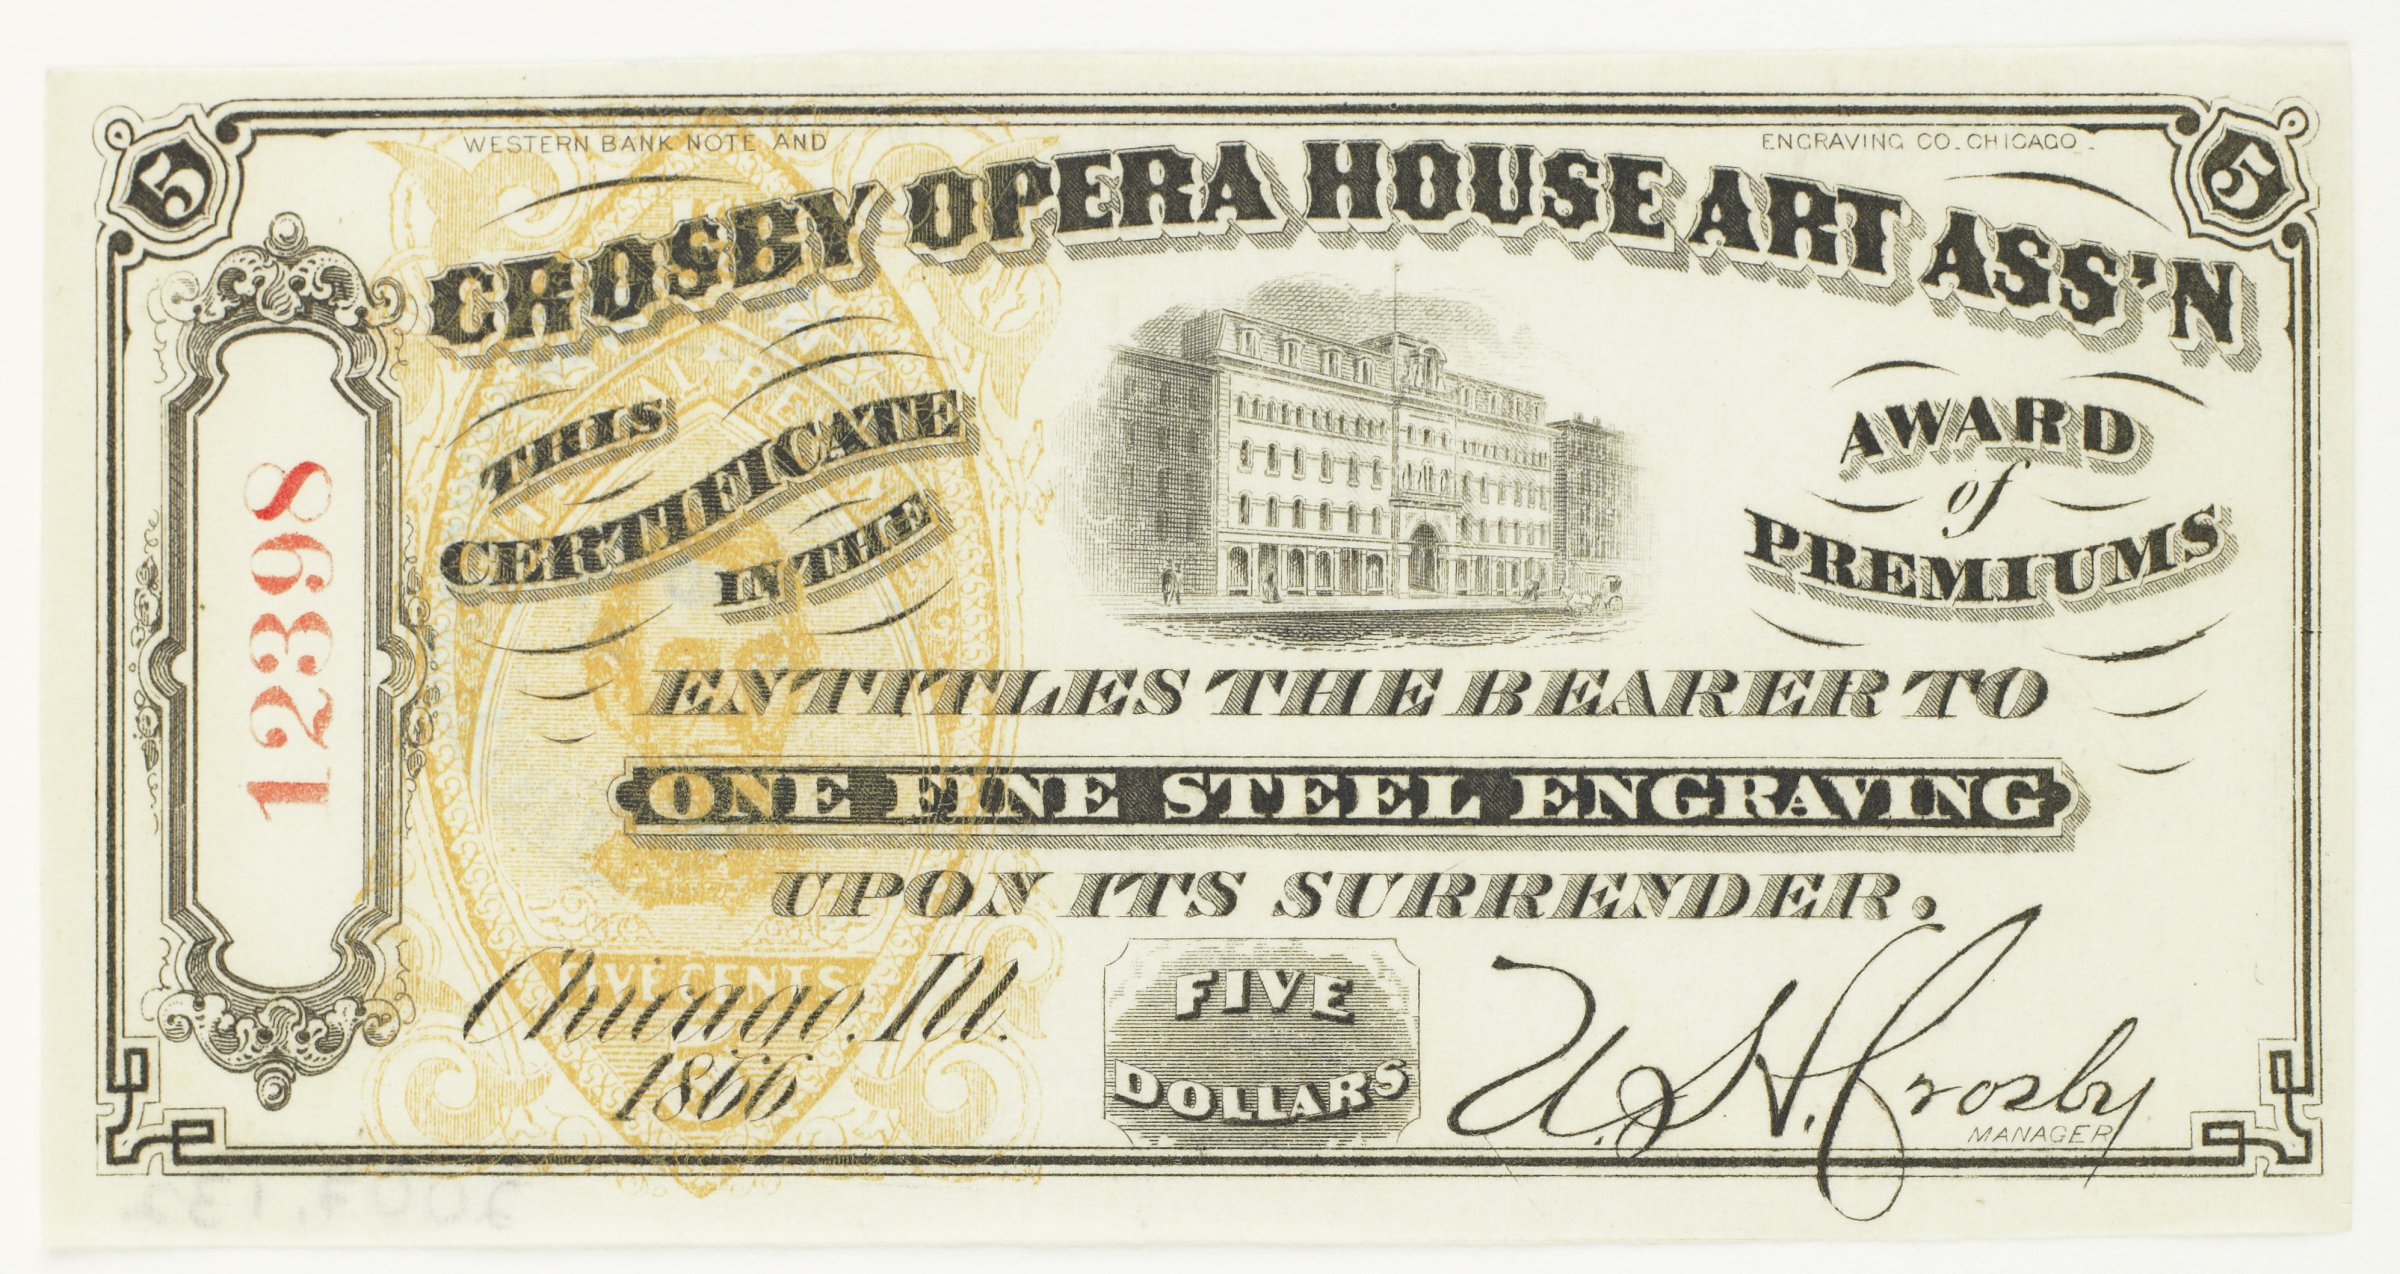 """**Obverse:  All within decorative border, number """"5"""" within shield at upper left and right corners; decorative panel at far left with number """"12398"""" (vertically aligned and printed in red ink) / WESTERN BANK NOTE AND (long space) ENGRAVING CO. CHICAGO / CROSBY OPERA HOUSE ART ASS'N / THIS / CERTIFICATE / IN THE / [central image of Crosby Opera House] / AWARD / of / PREMIUMS / ENTITLES THE BEARER TO / ONE FINE STEEL ENGRAVING / UPON ITS SURRENDER.  / Chicago . Ill. / 1866 /  FIVE / DOLLARS / [mechanically printed signature] U. H. Crosby  / MANAGER; faux watermark at left, printed in orange, within a decorative marquise-shaped border, INTERNAL * REVENUE / [bust portrait Abraham Lincoln looking right] / FIVE CENTS / 5Reverse:  Hand-cancelled in blue ink with oval-shaped stamp:  ENGRAVING DELIVERED / CROSBY, A. A. NEW YORK. (around)  / AUG / 9 / 1866 (center)"""